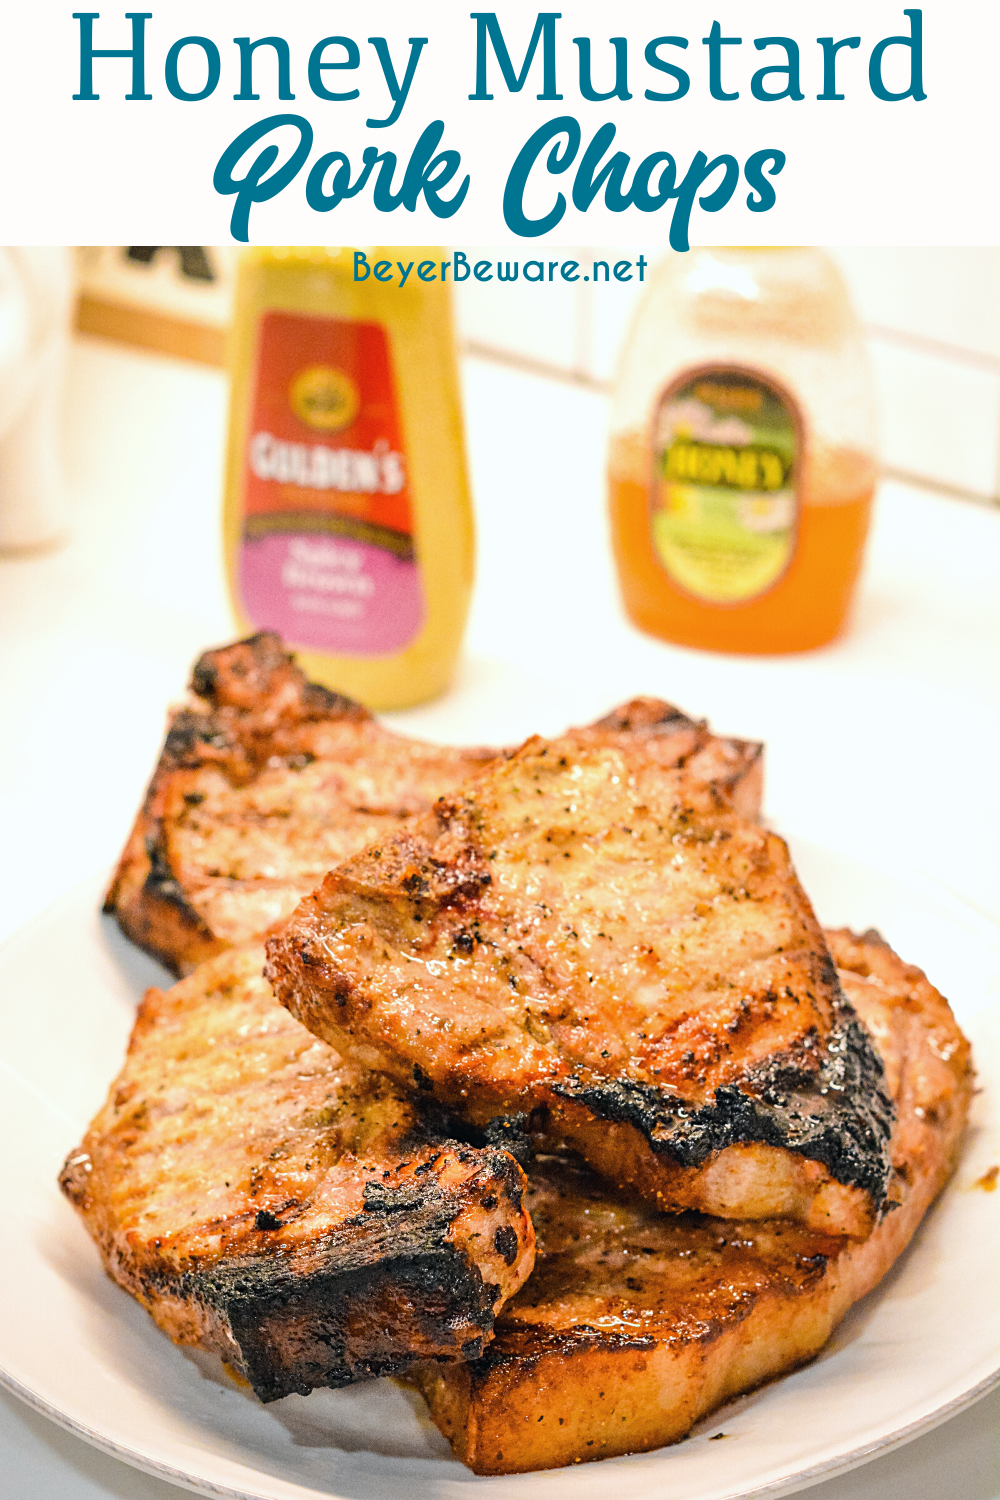 Honey Mustard Pork Chops are a quick and easy pork chop recipe with just four ingredients creating flavorful chops that can be grilled or baked.